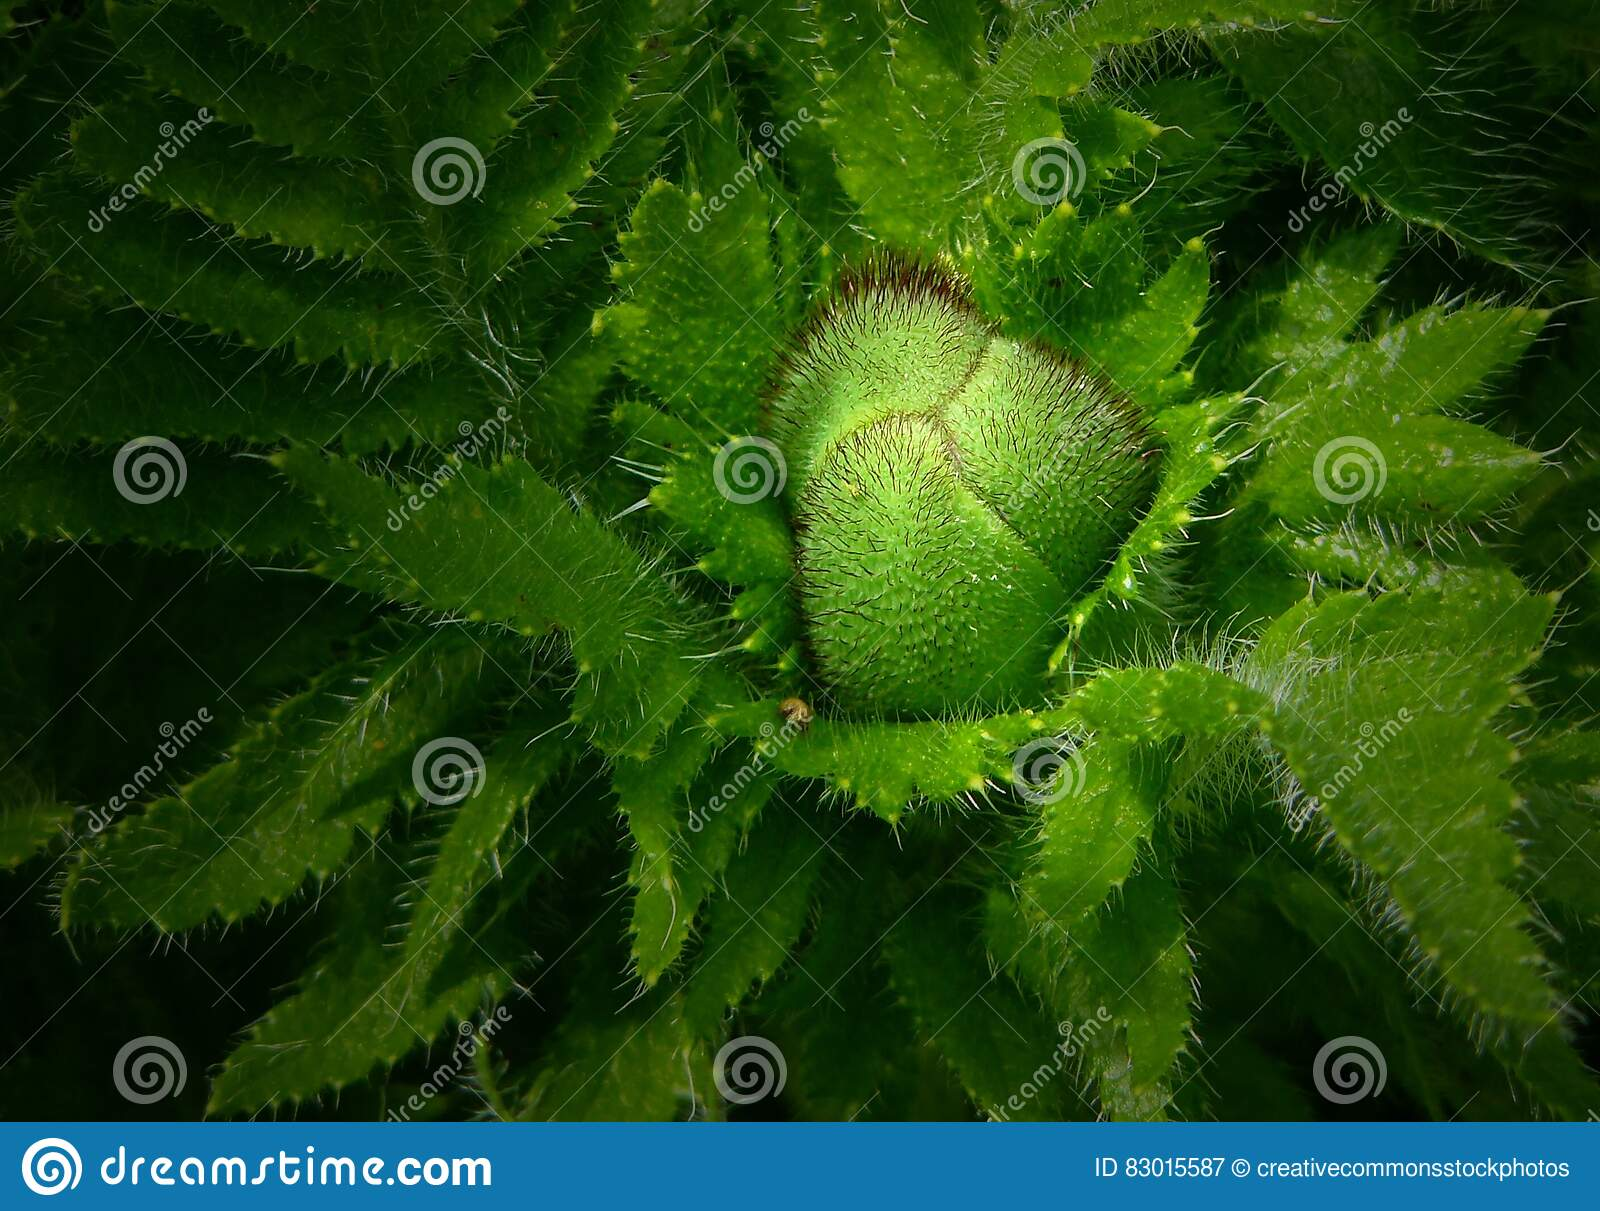 Download Green Spiked Edge Plant Close Up Photo Stock Image - Image of close, green: 83015587